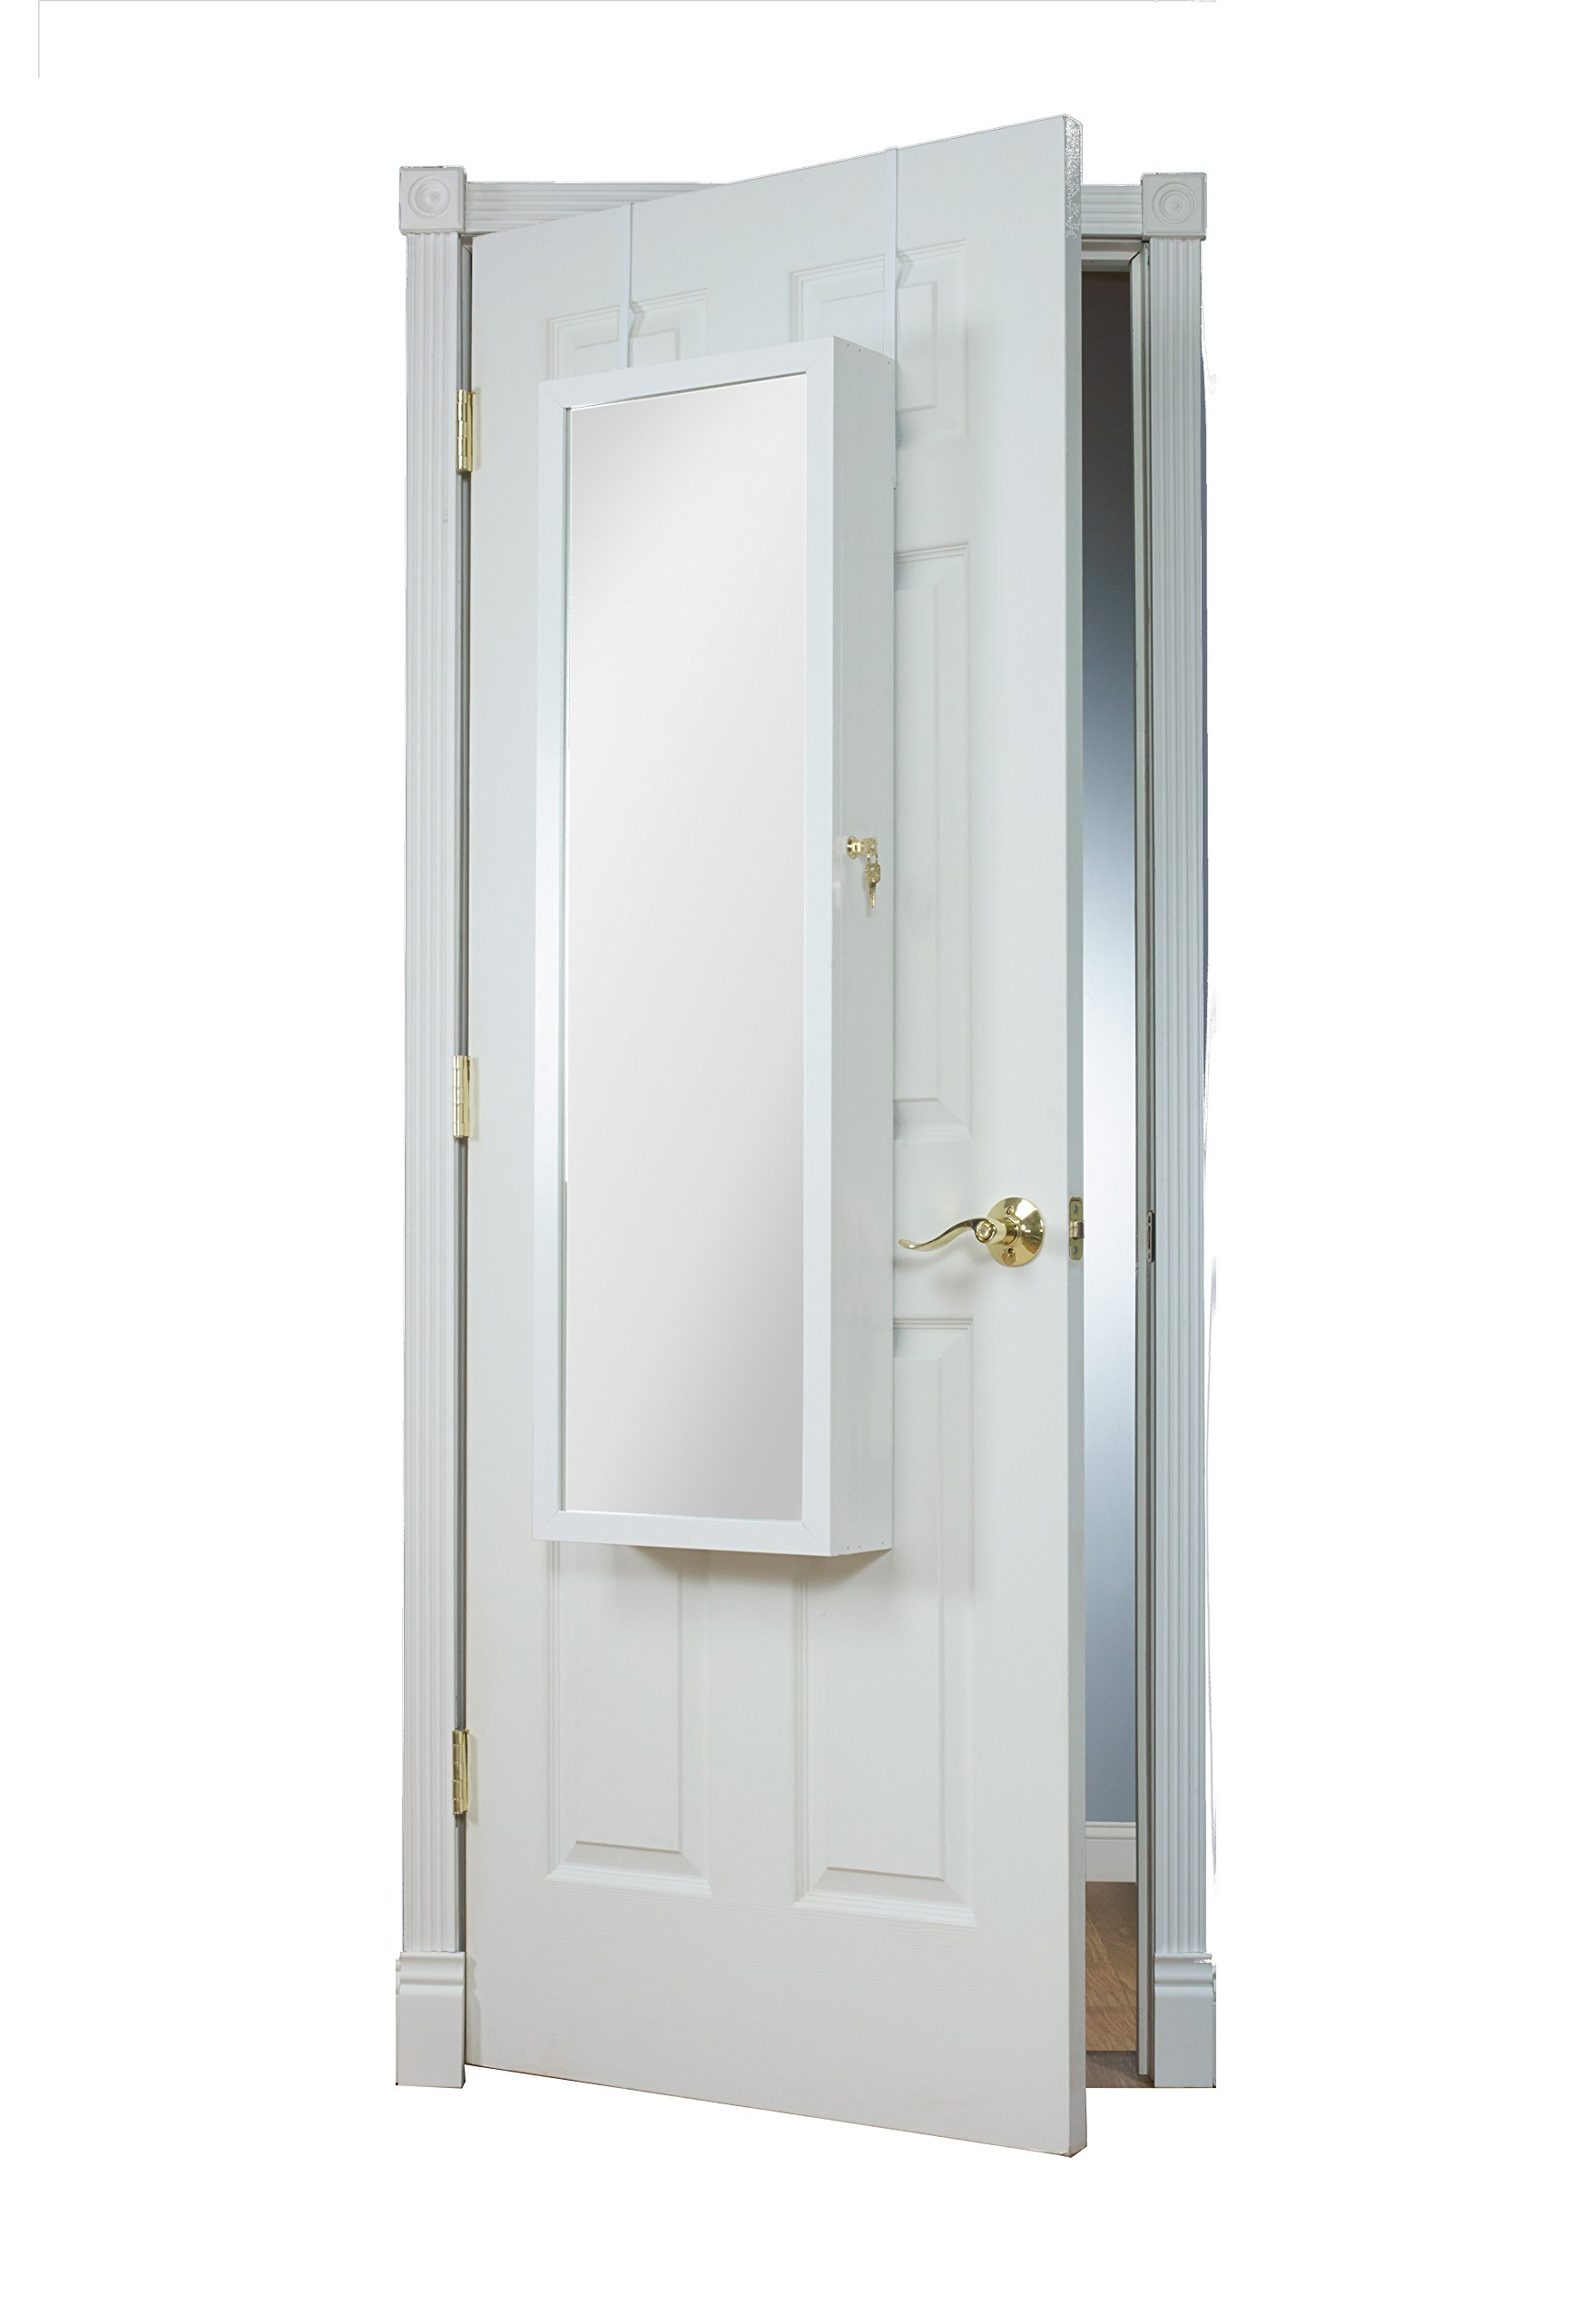 Mirrotek Over The Door Combination Jewelry and Makeup Armoire, White by Mirrotek (Image #2)